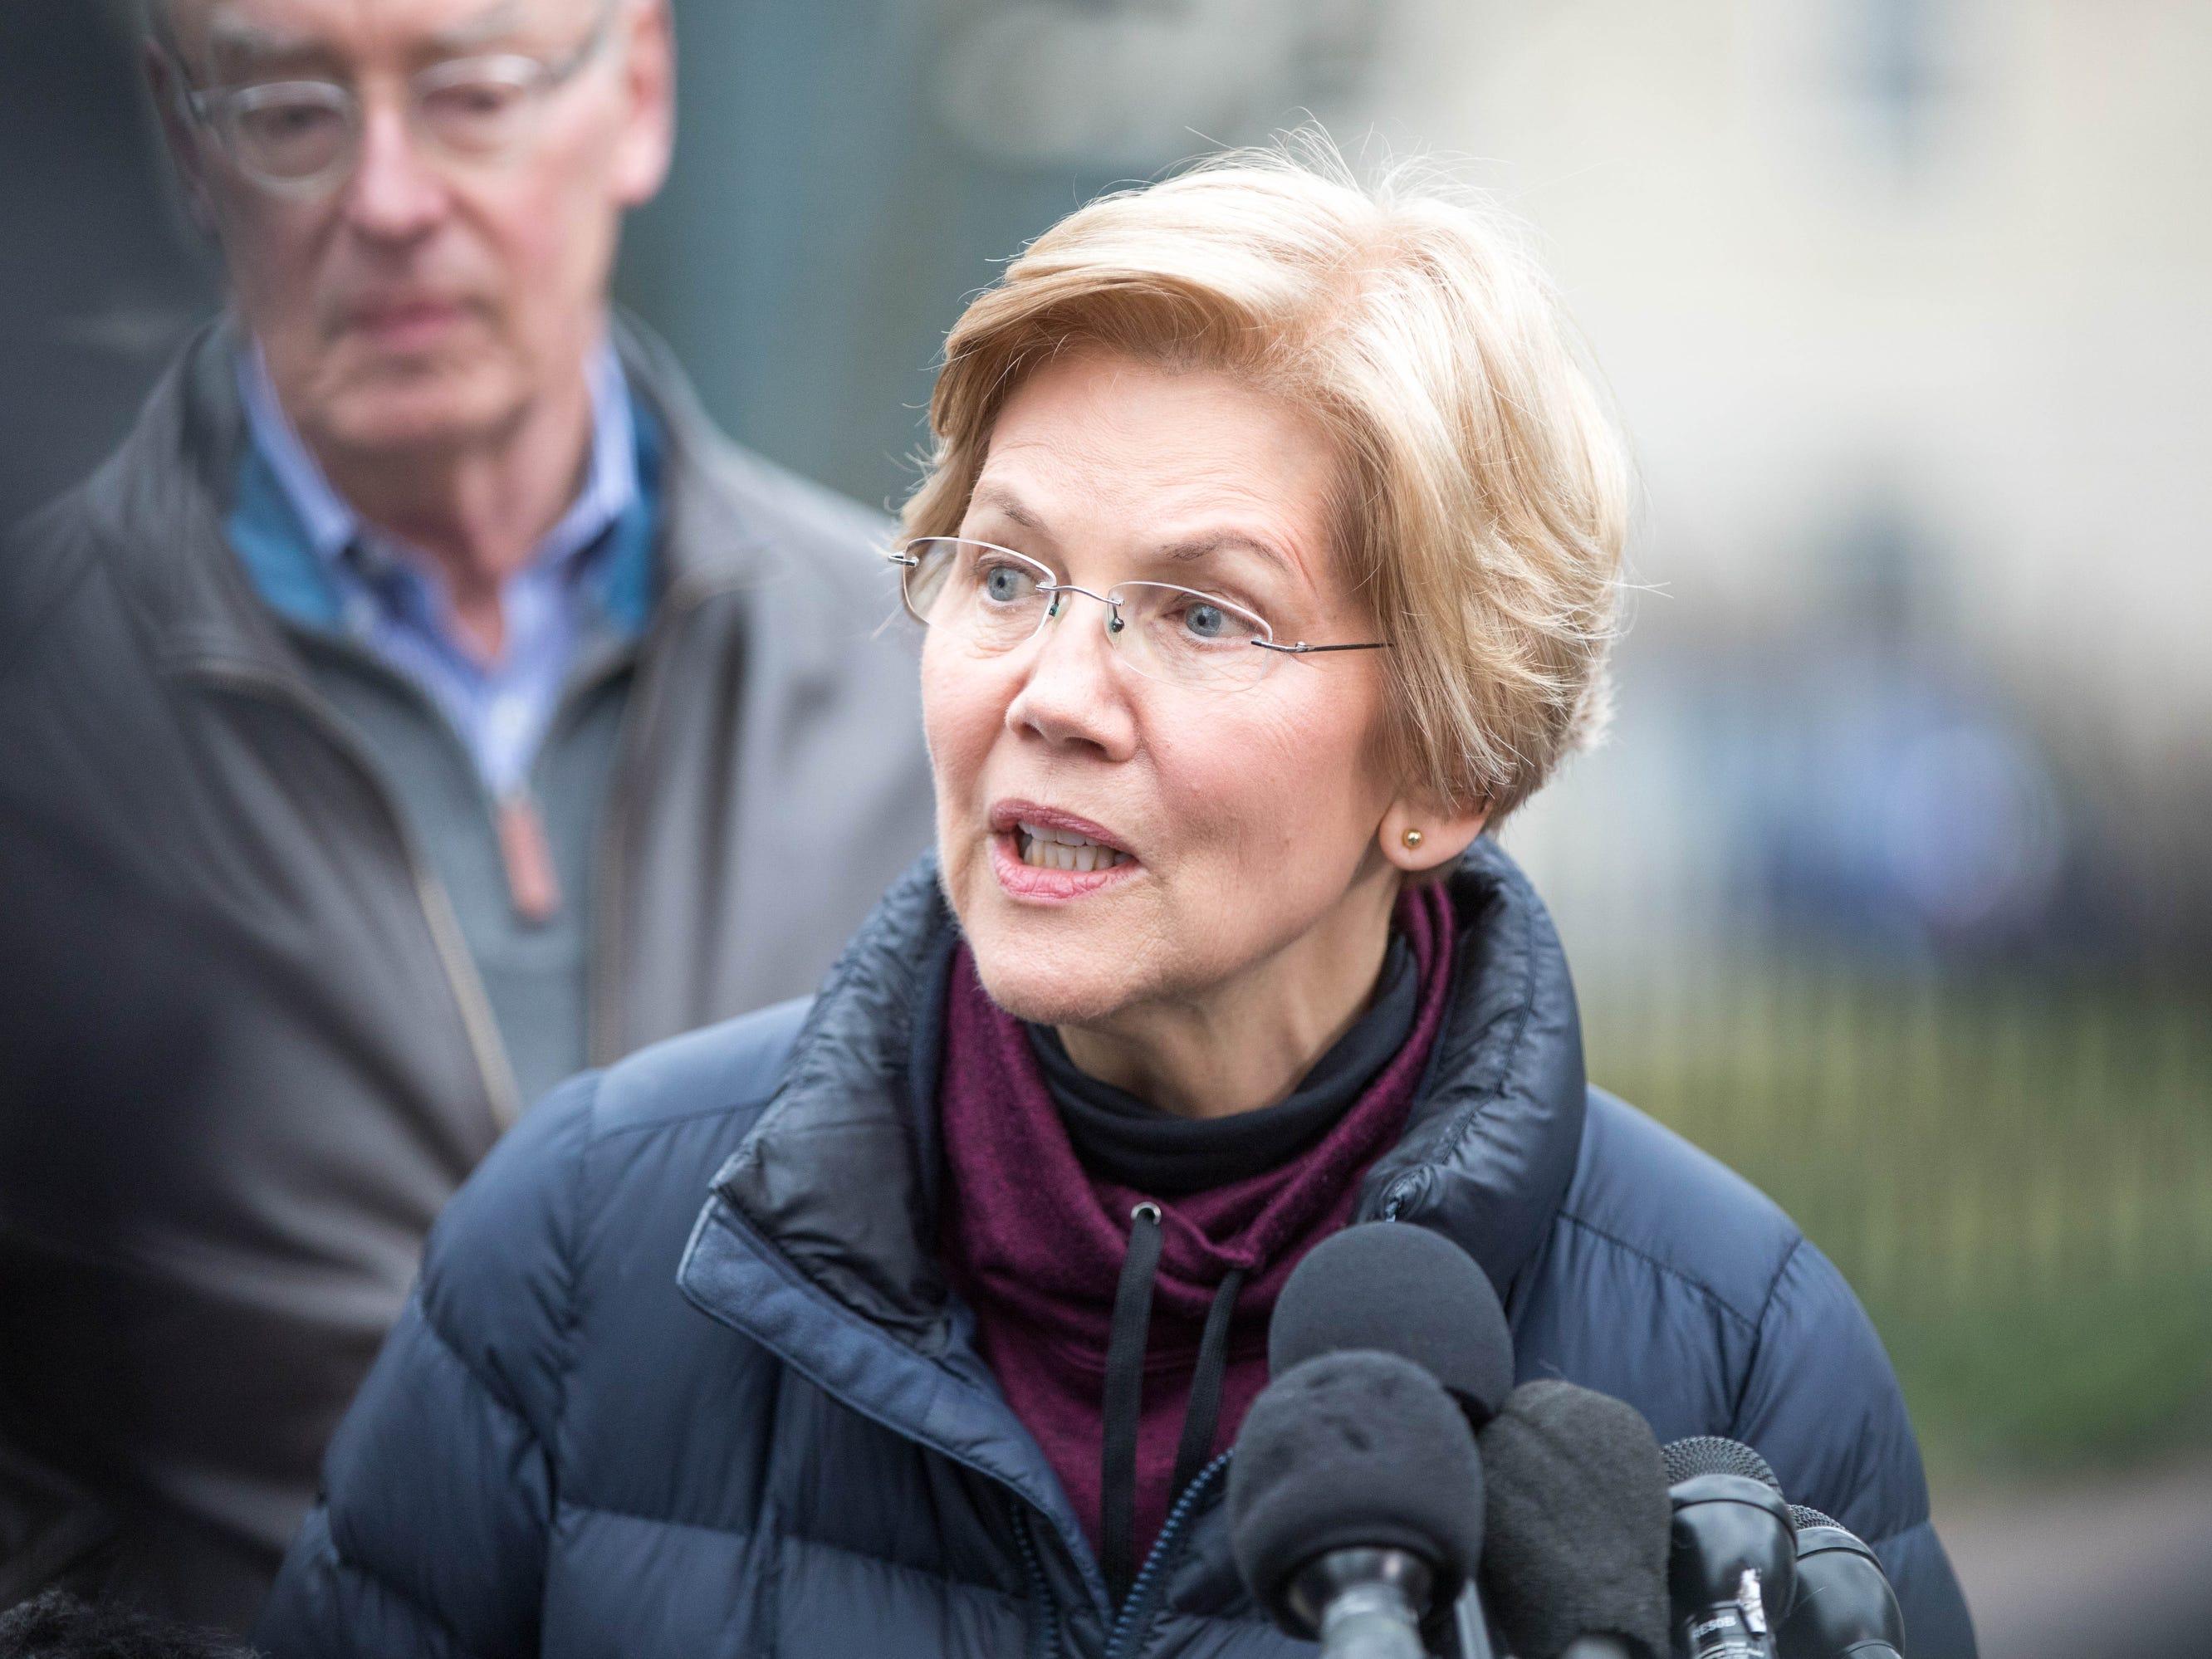 Sen. Elizabeth Warren (D-MA), addresses the media outside of her home after announcing she formed an exploratory committee for a 2020 Presidential run on Dece. 31, 2018 in Cambridge, Mass.